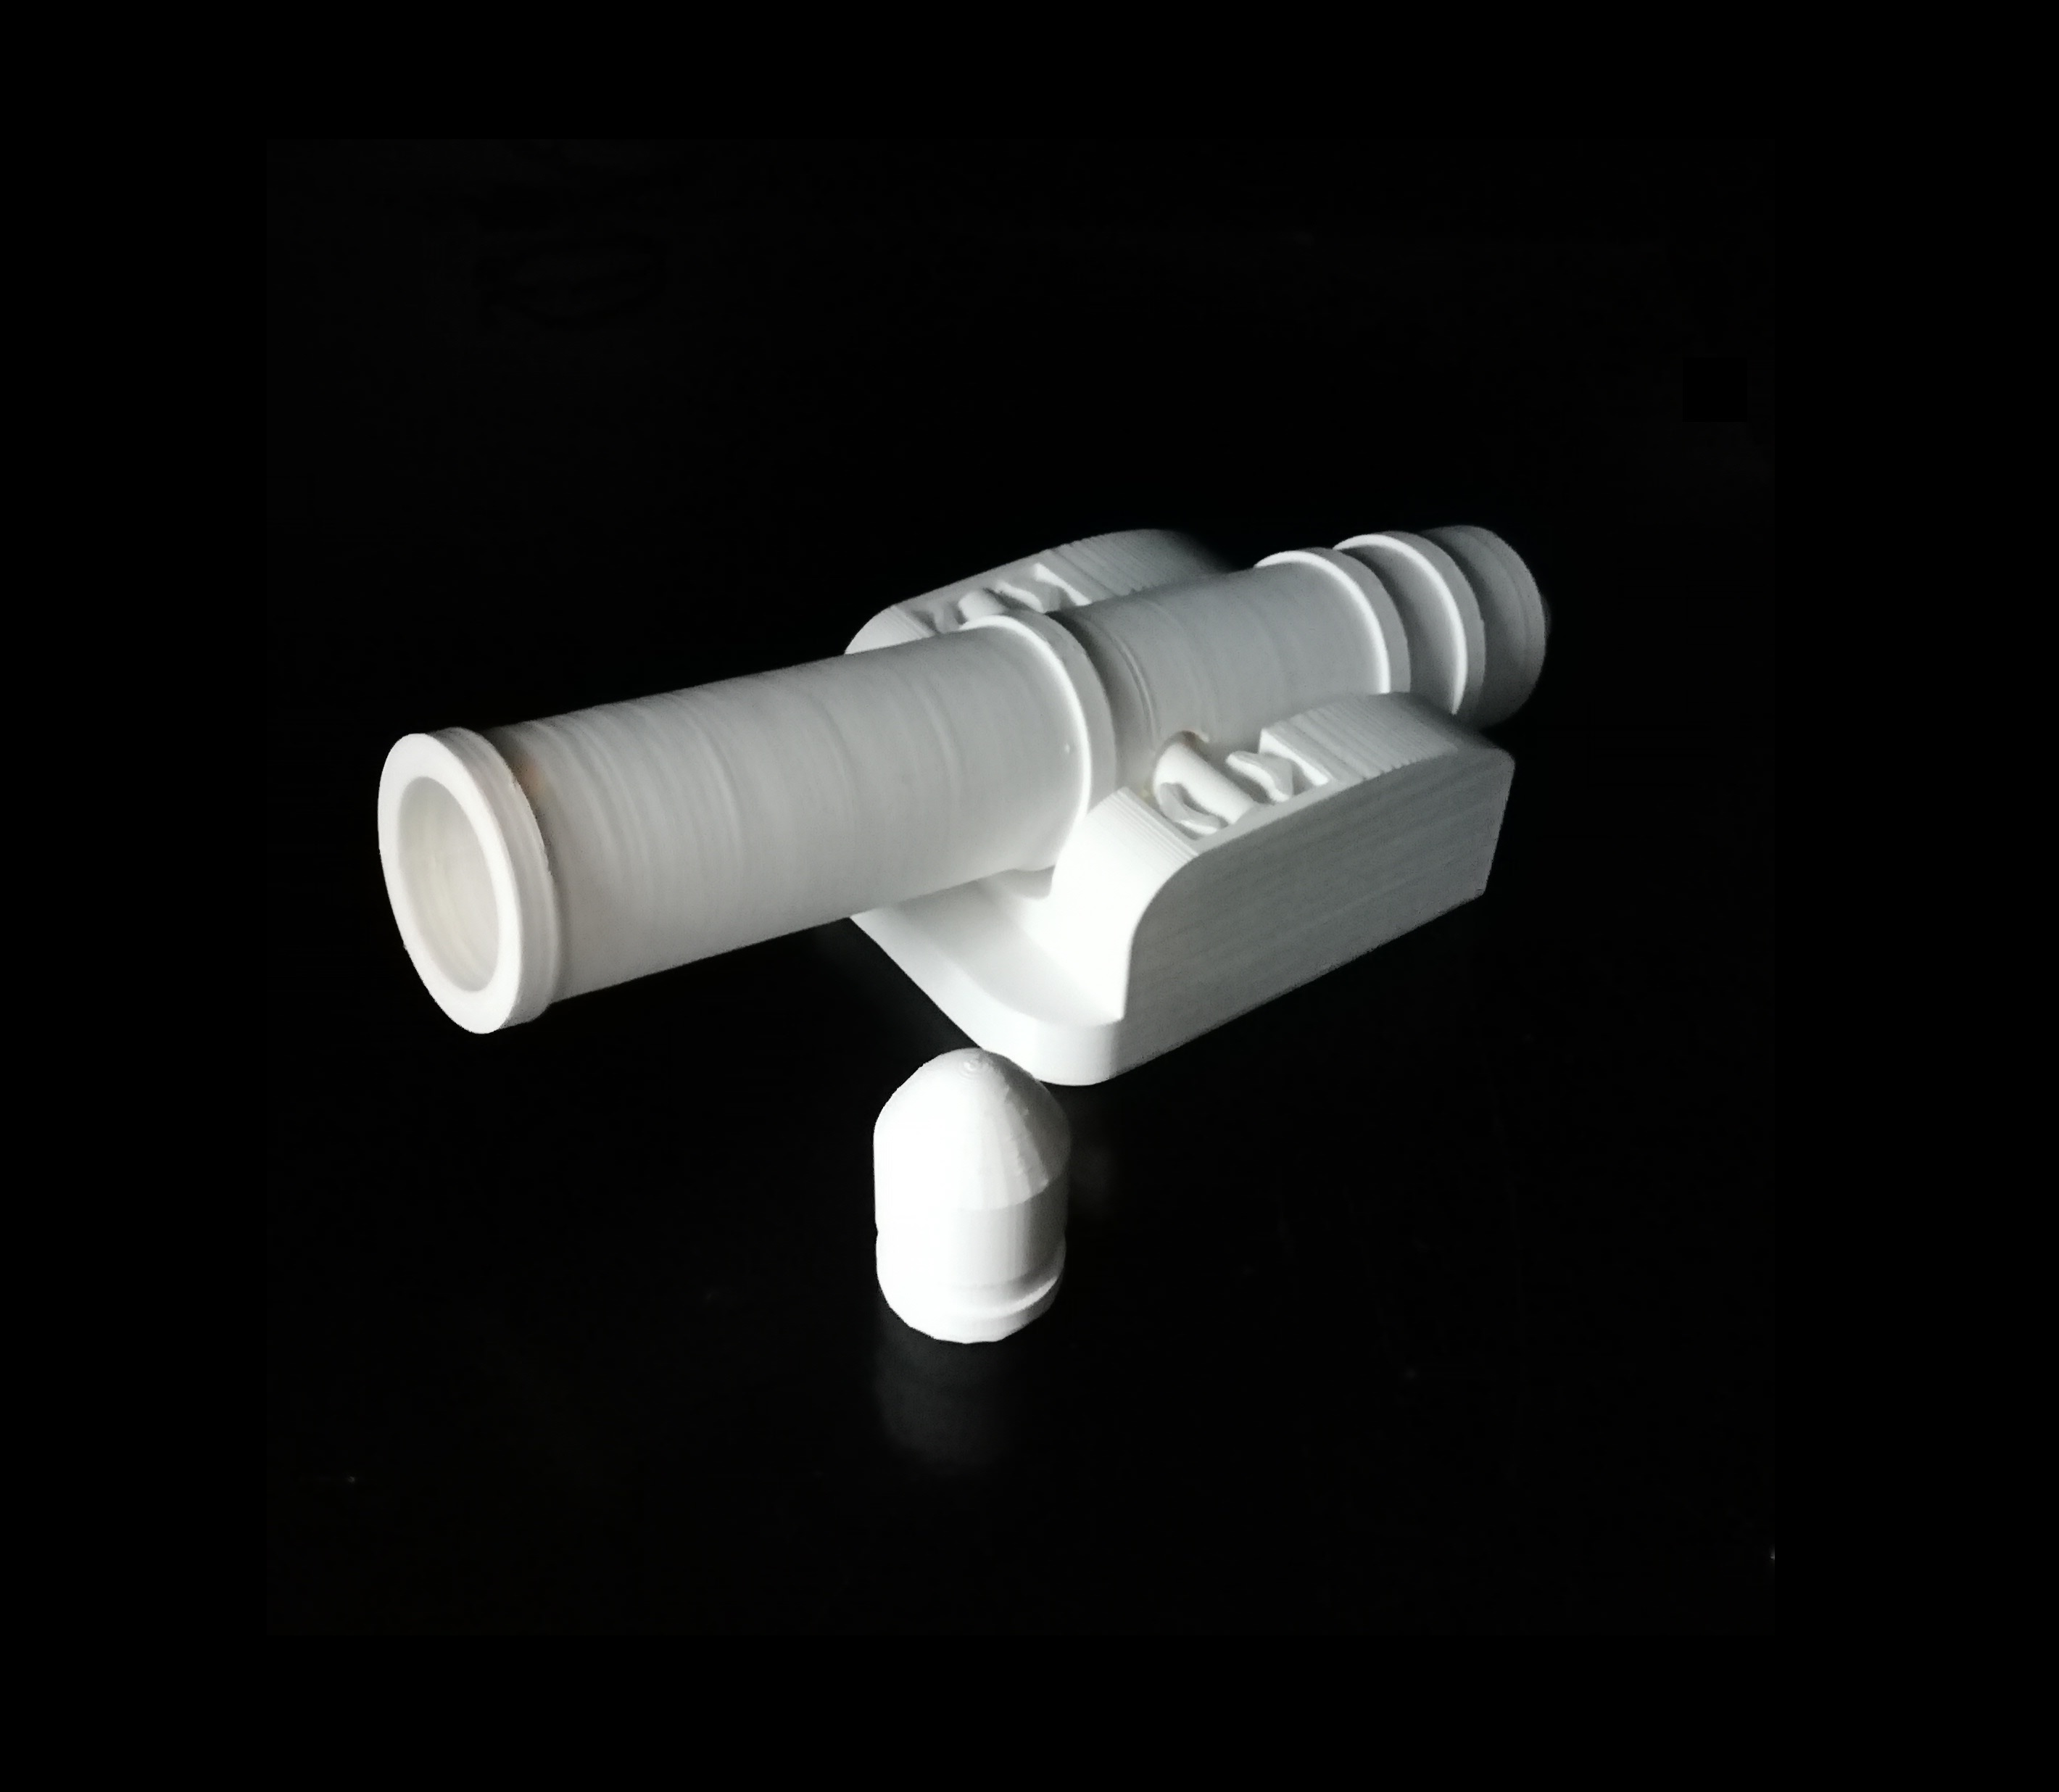 tank_upgrade_02.jpg Download STL file Upgrade set cannon for moving tank • Template to 3D print, eAgent